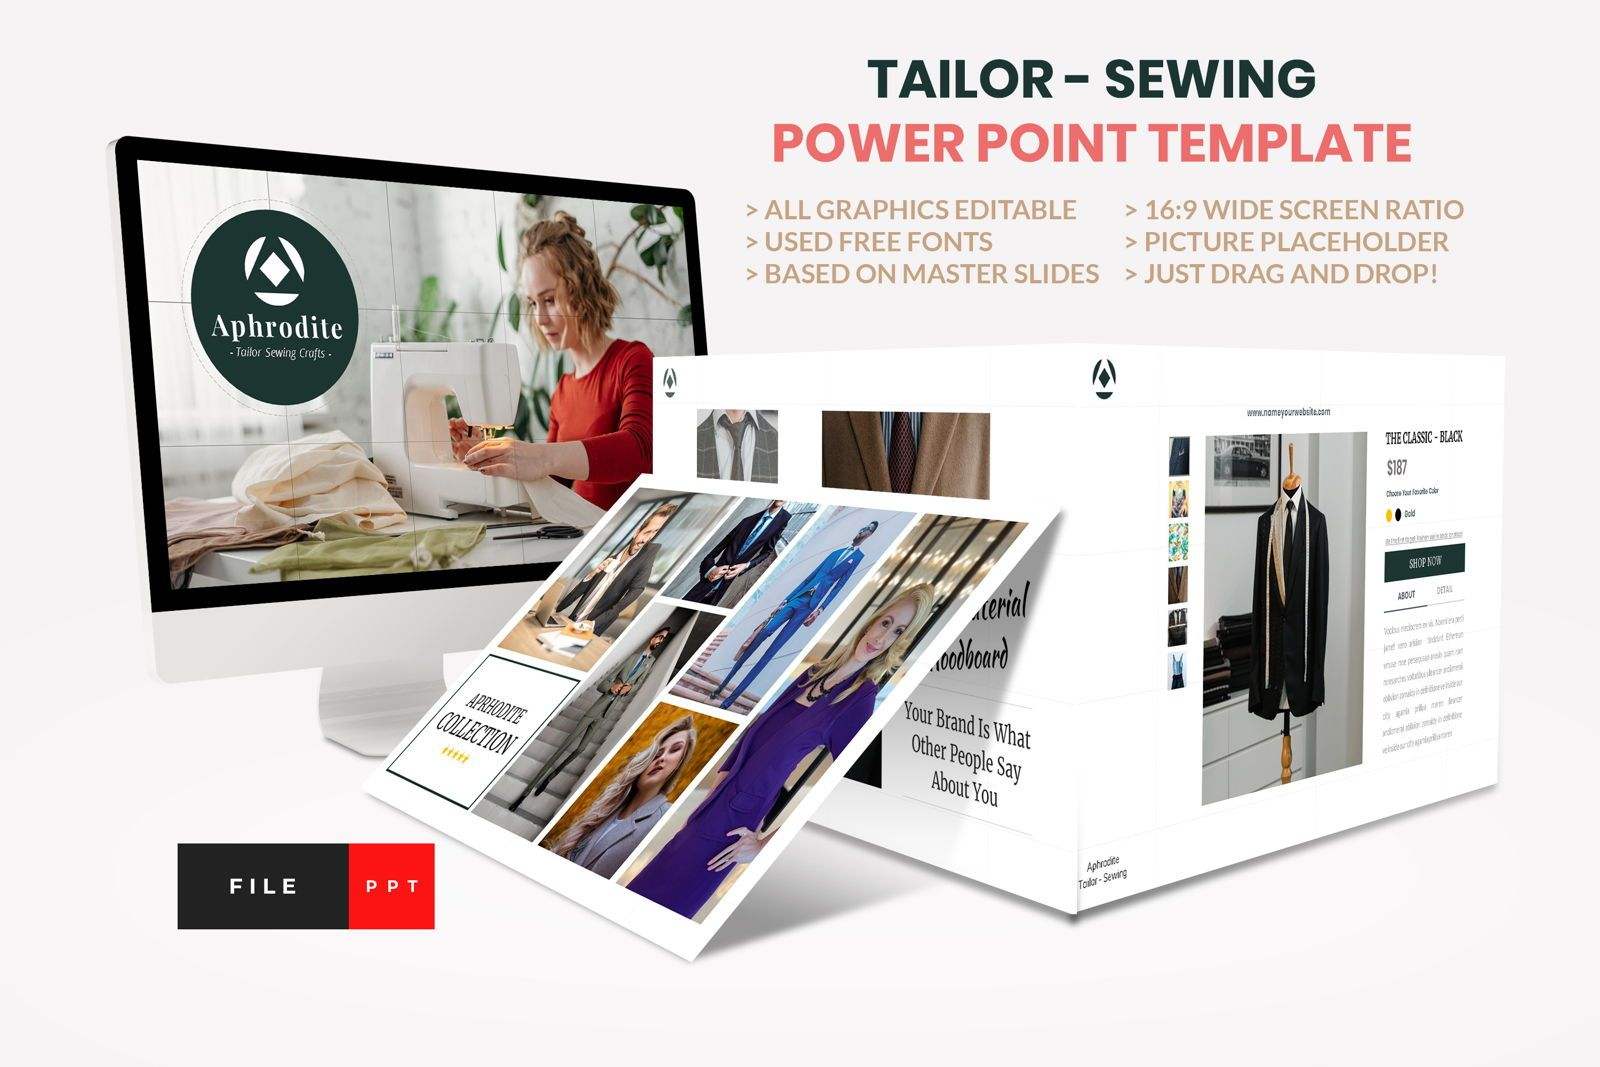 Tailor - Sewing Fashion Craft Power Point Template, 08609, Business Models — PoweredTemplate.com